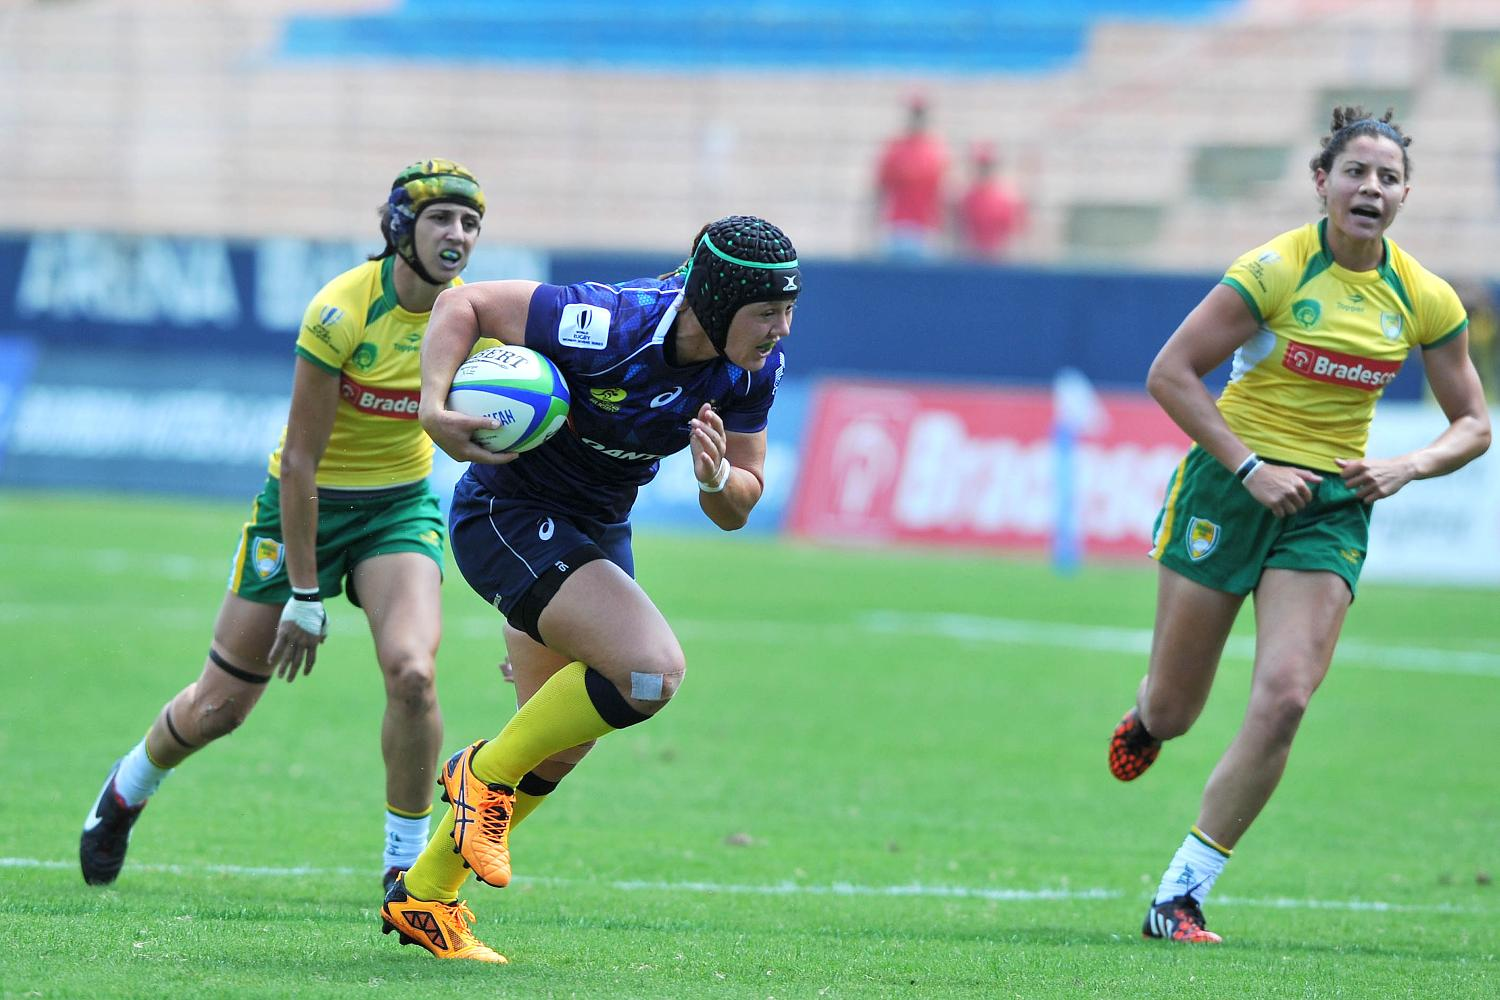 Australia and Brazil on day one of the Brazil 7s